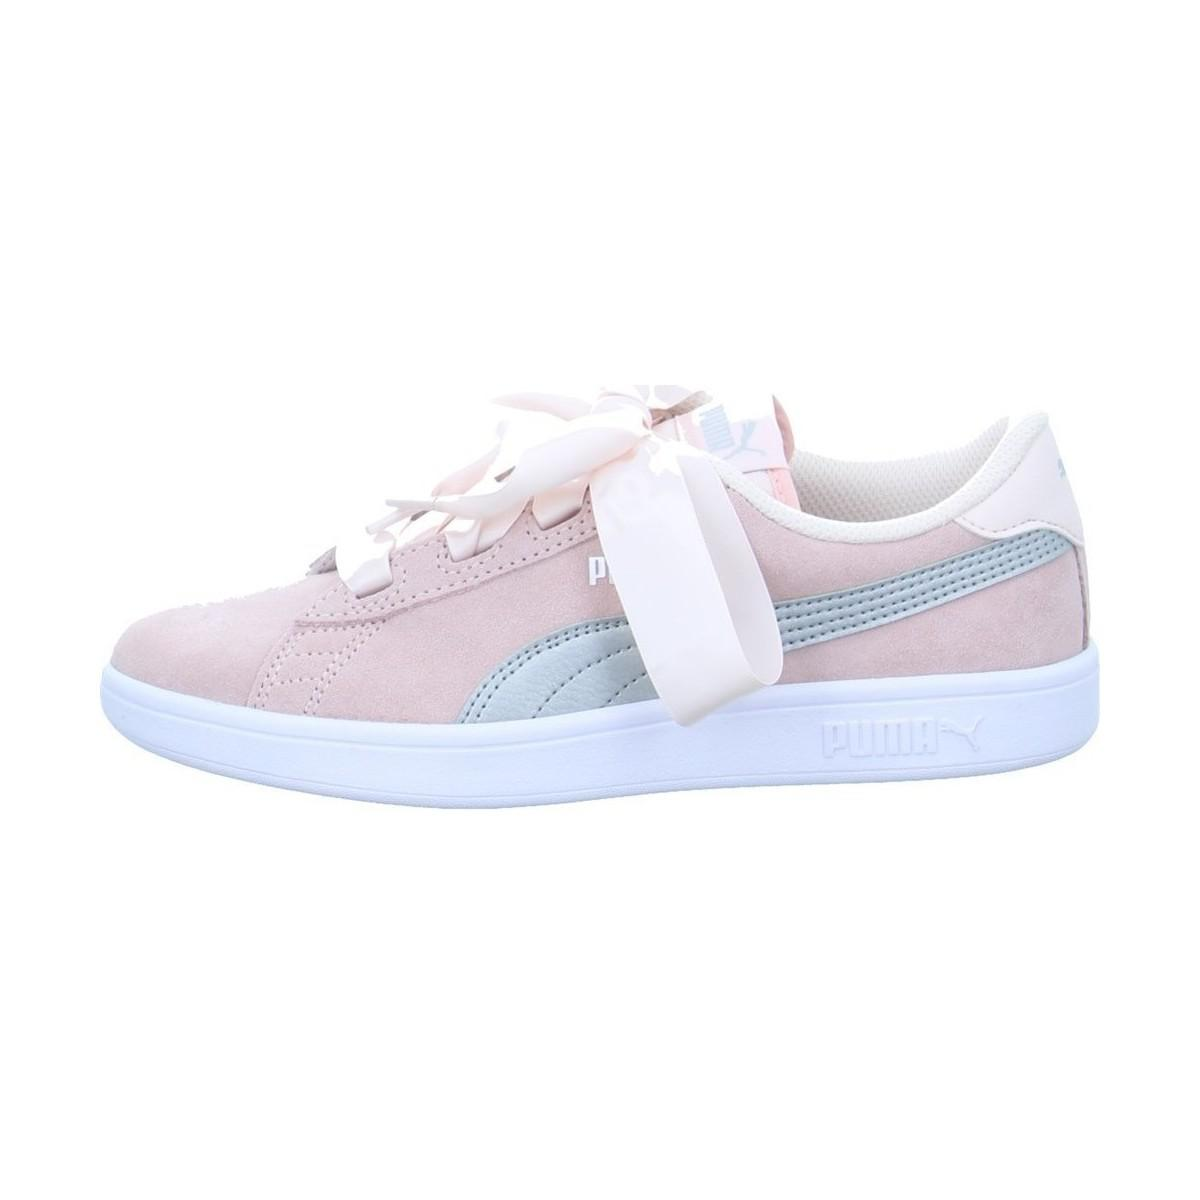 3461a70b93266f Gallery. Previously sold at  Spartoo · Women s Neoprene Sneakers ...